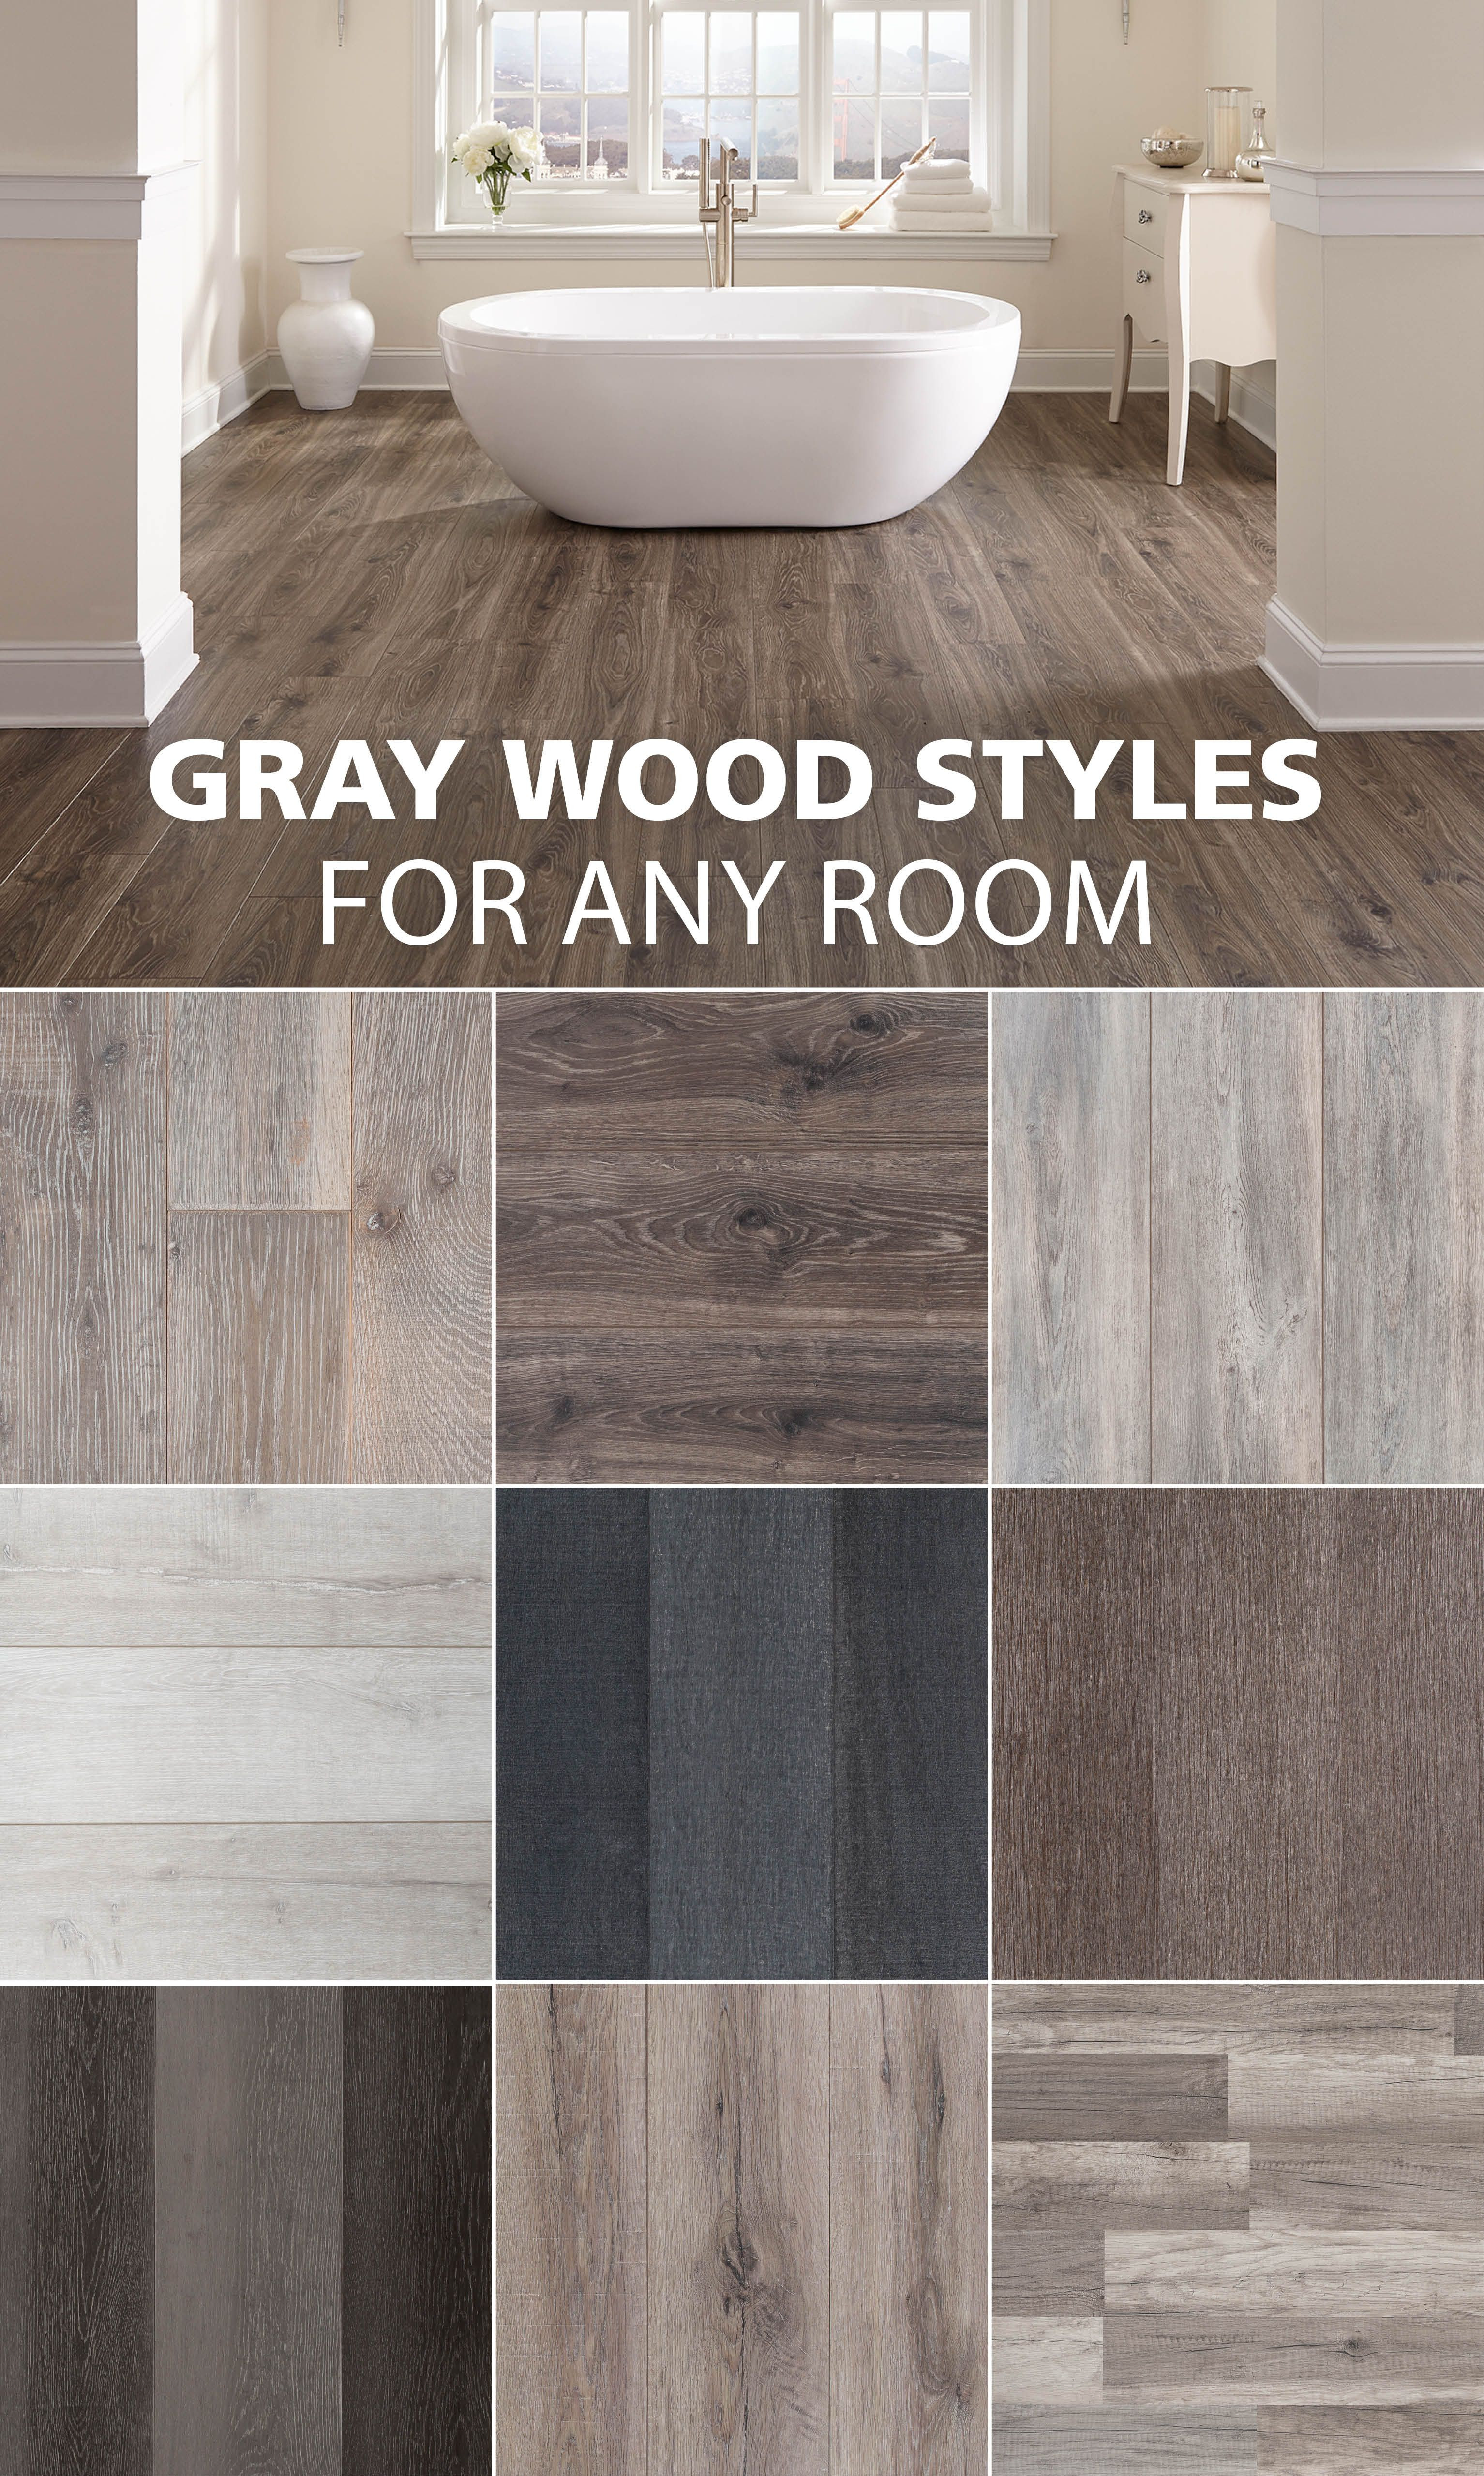 hardwood floor foam tiles of here are some of our favorite gray wood look styles home decor inside here are some of our favorite gray wood look styles gray hardwood floors light